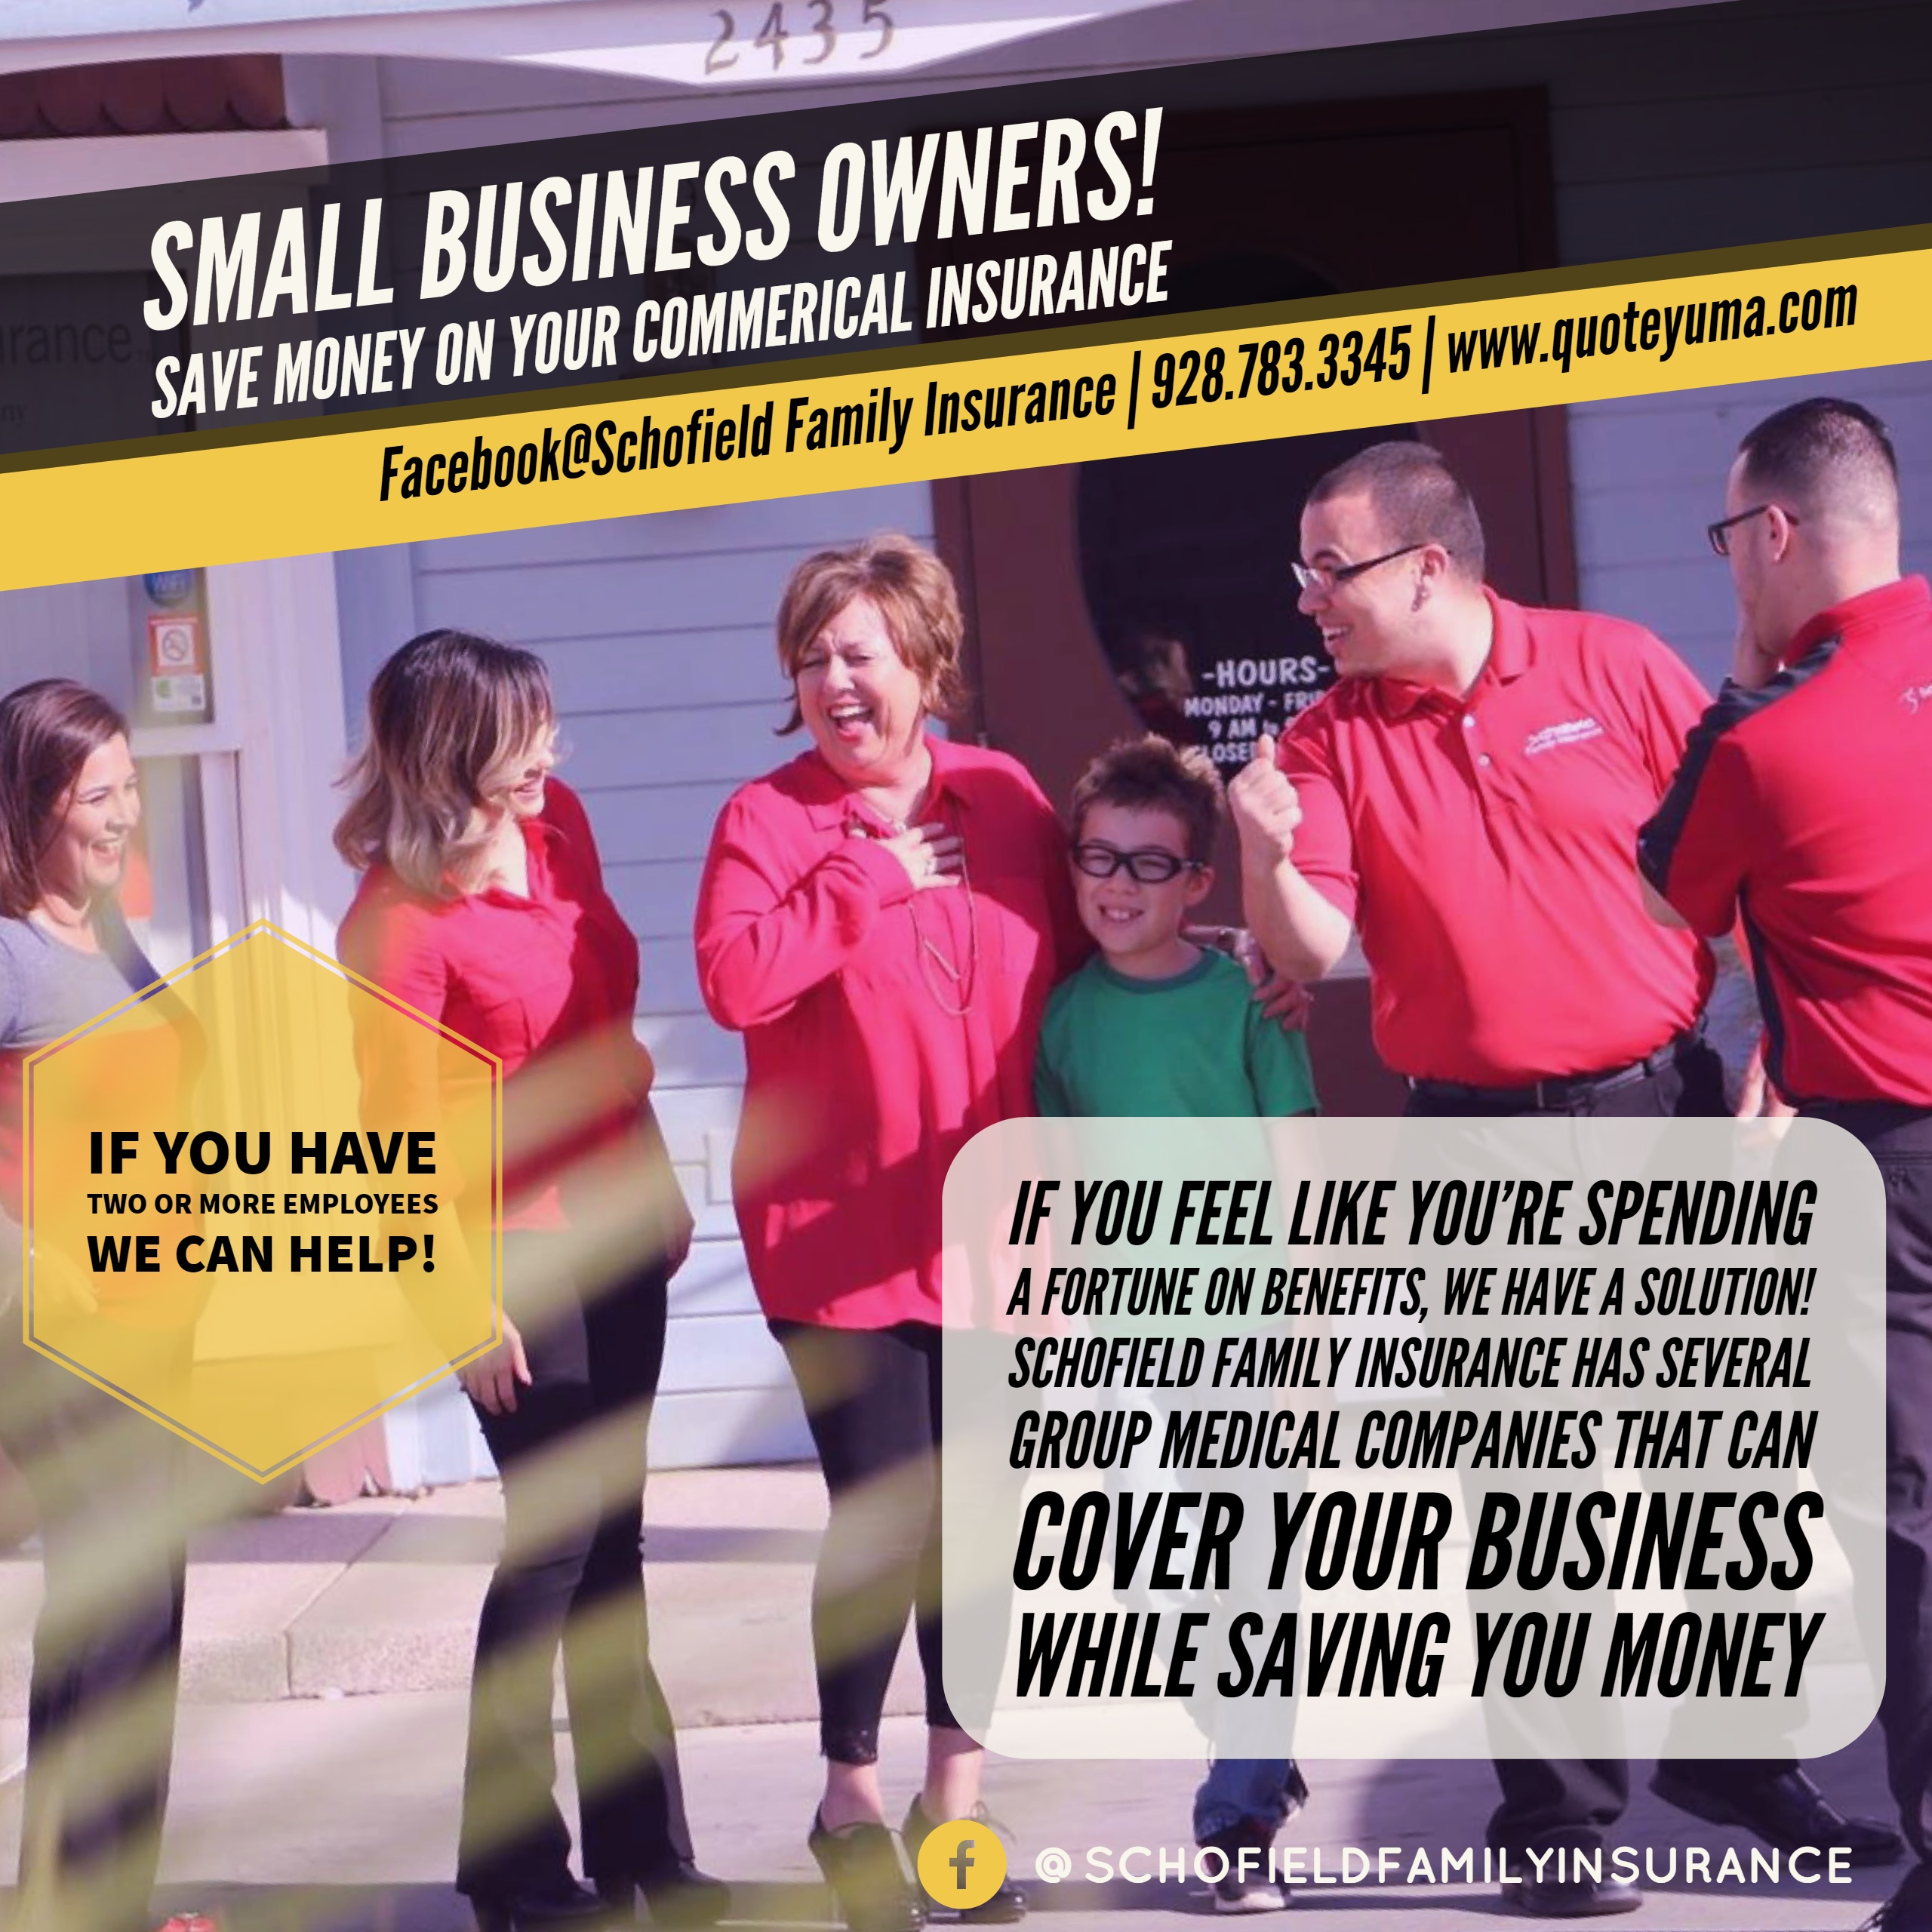 Schofield Family Insurance Small business owners press flyer 4